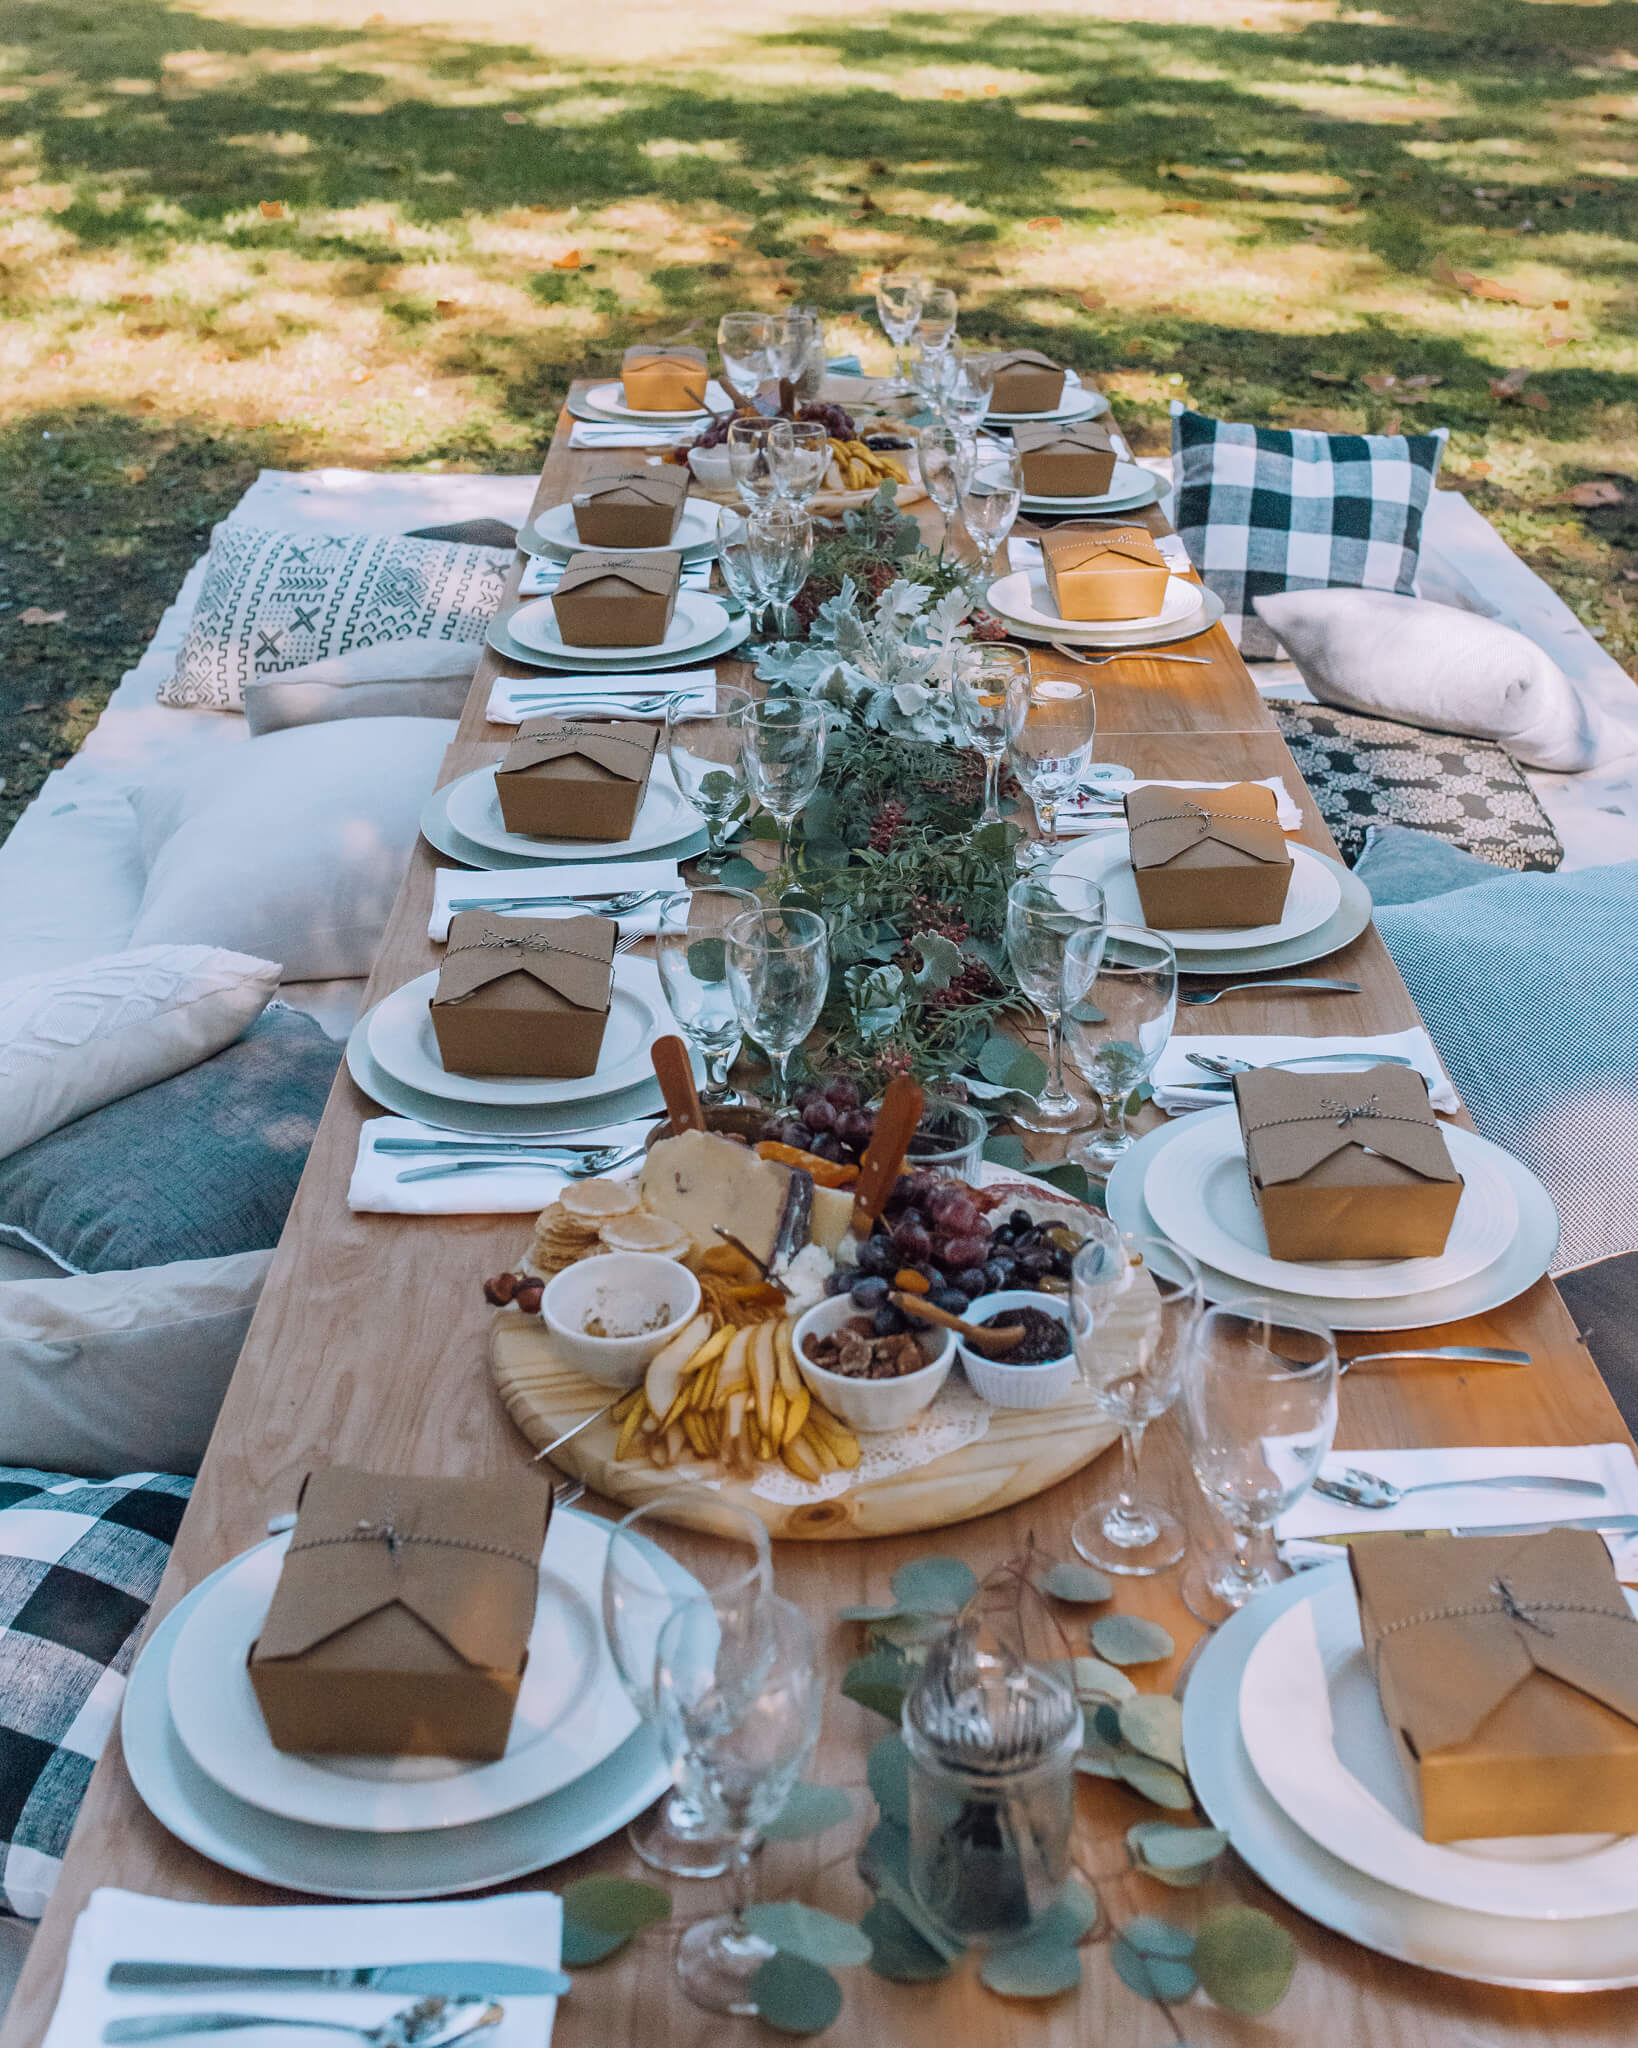 Dreamy lunch-picnic organized by Perry Lane